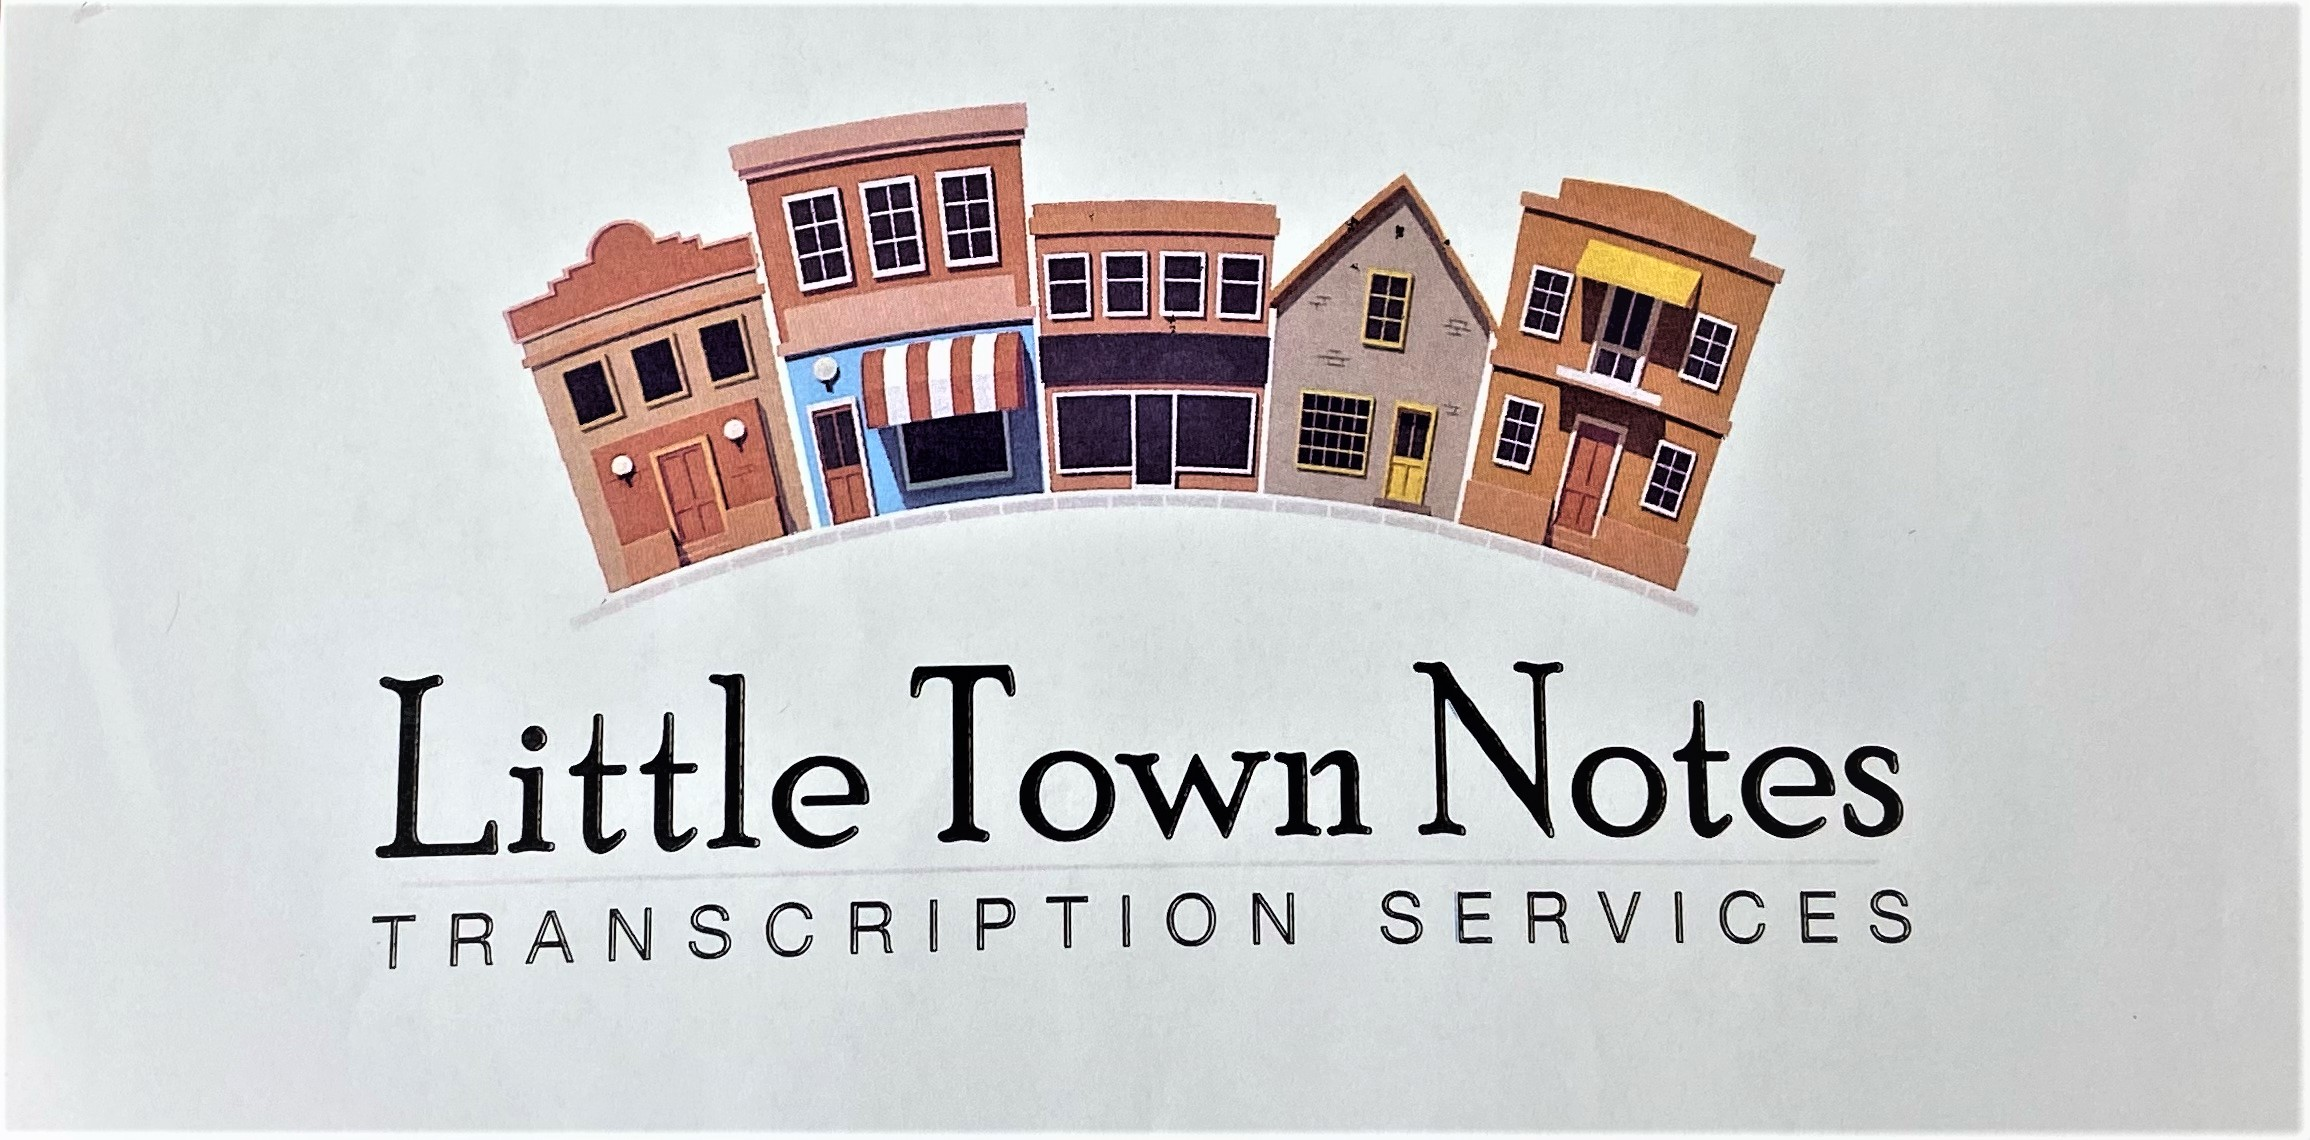 Little Town Notes